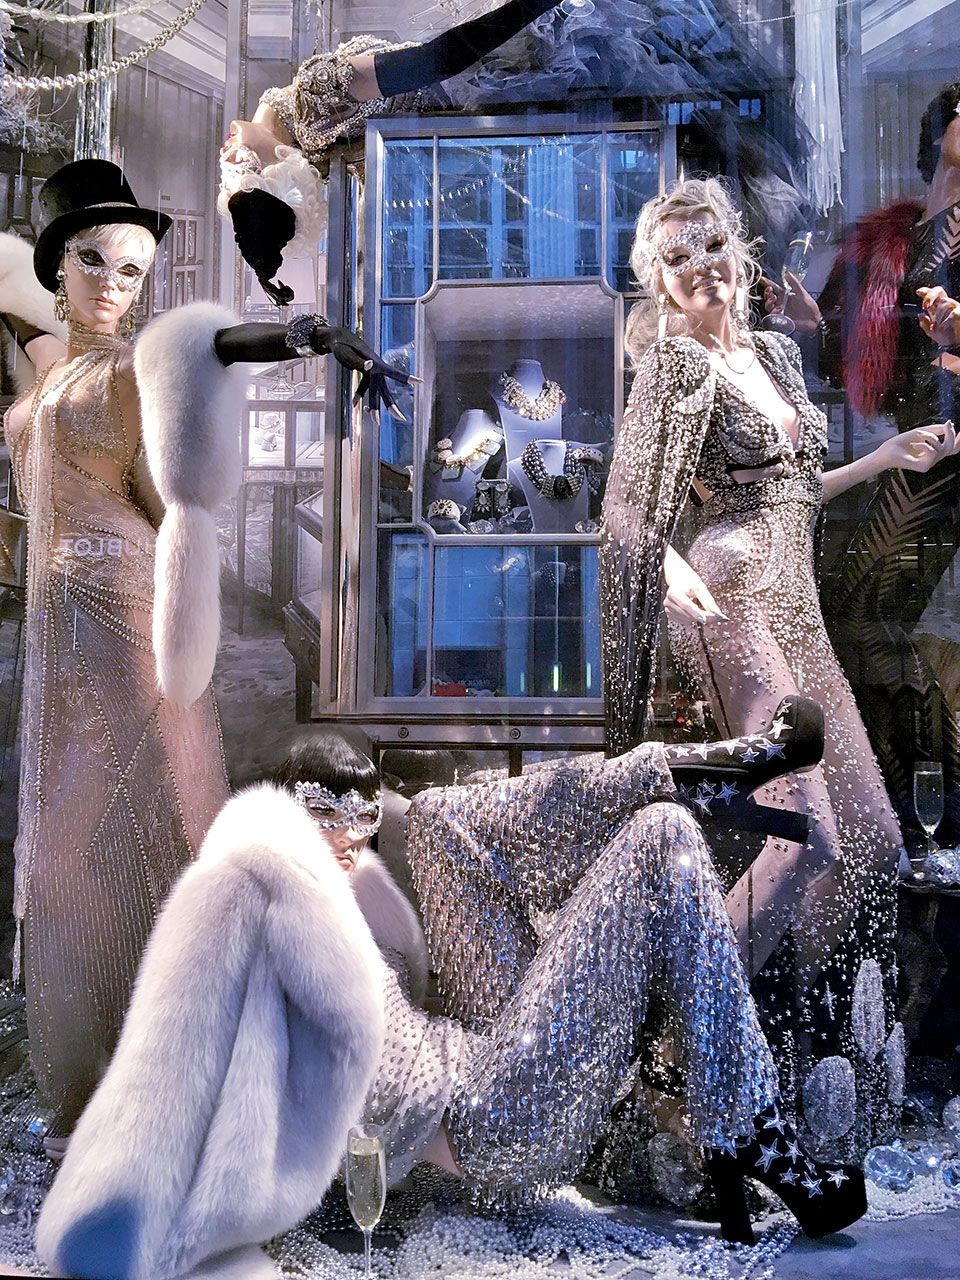 Window display at Bergdorf Goodman, New York City